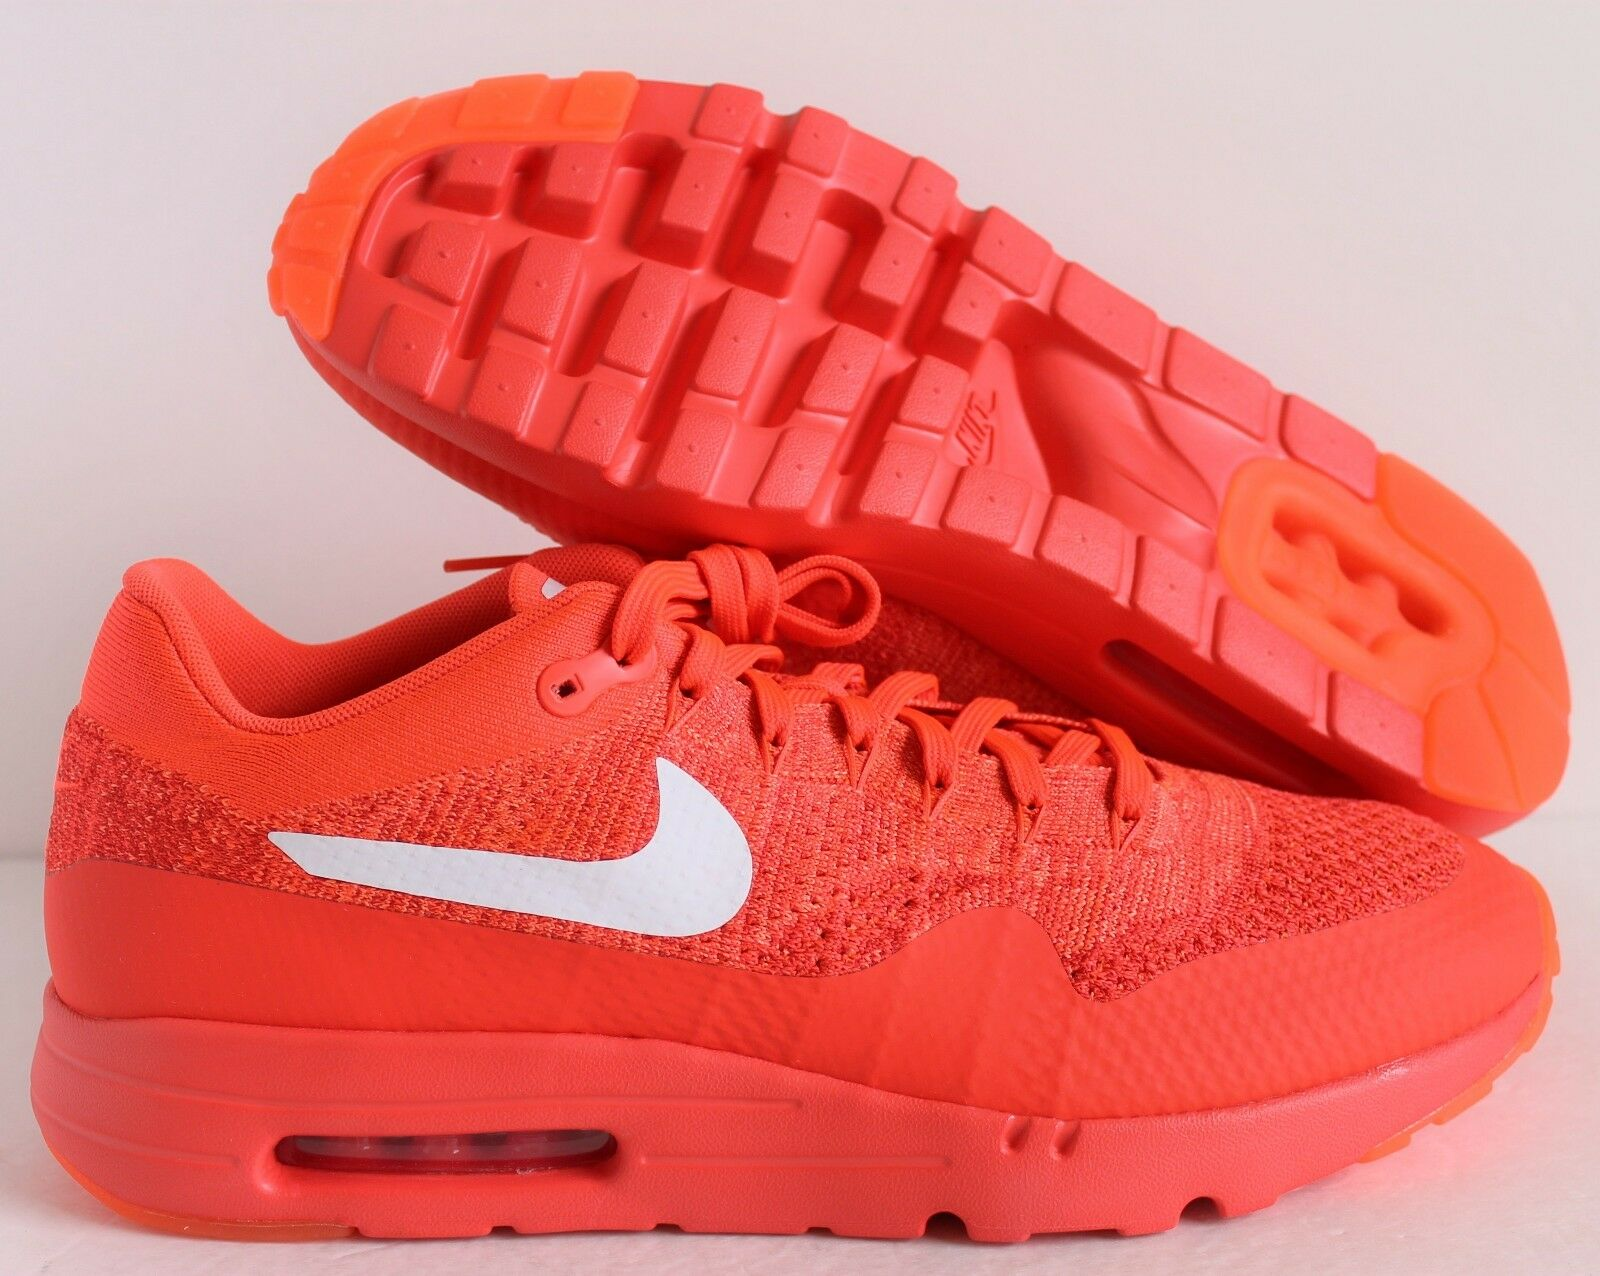 finest selection 74a1a 28723 NIKE AIR MAX MAX MAX 1 ULTRA FLYKNIT BRIGHT CRIMSON-blanc-rouge SZ 13   843384-601  e57fb8